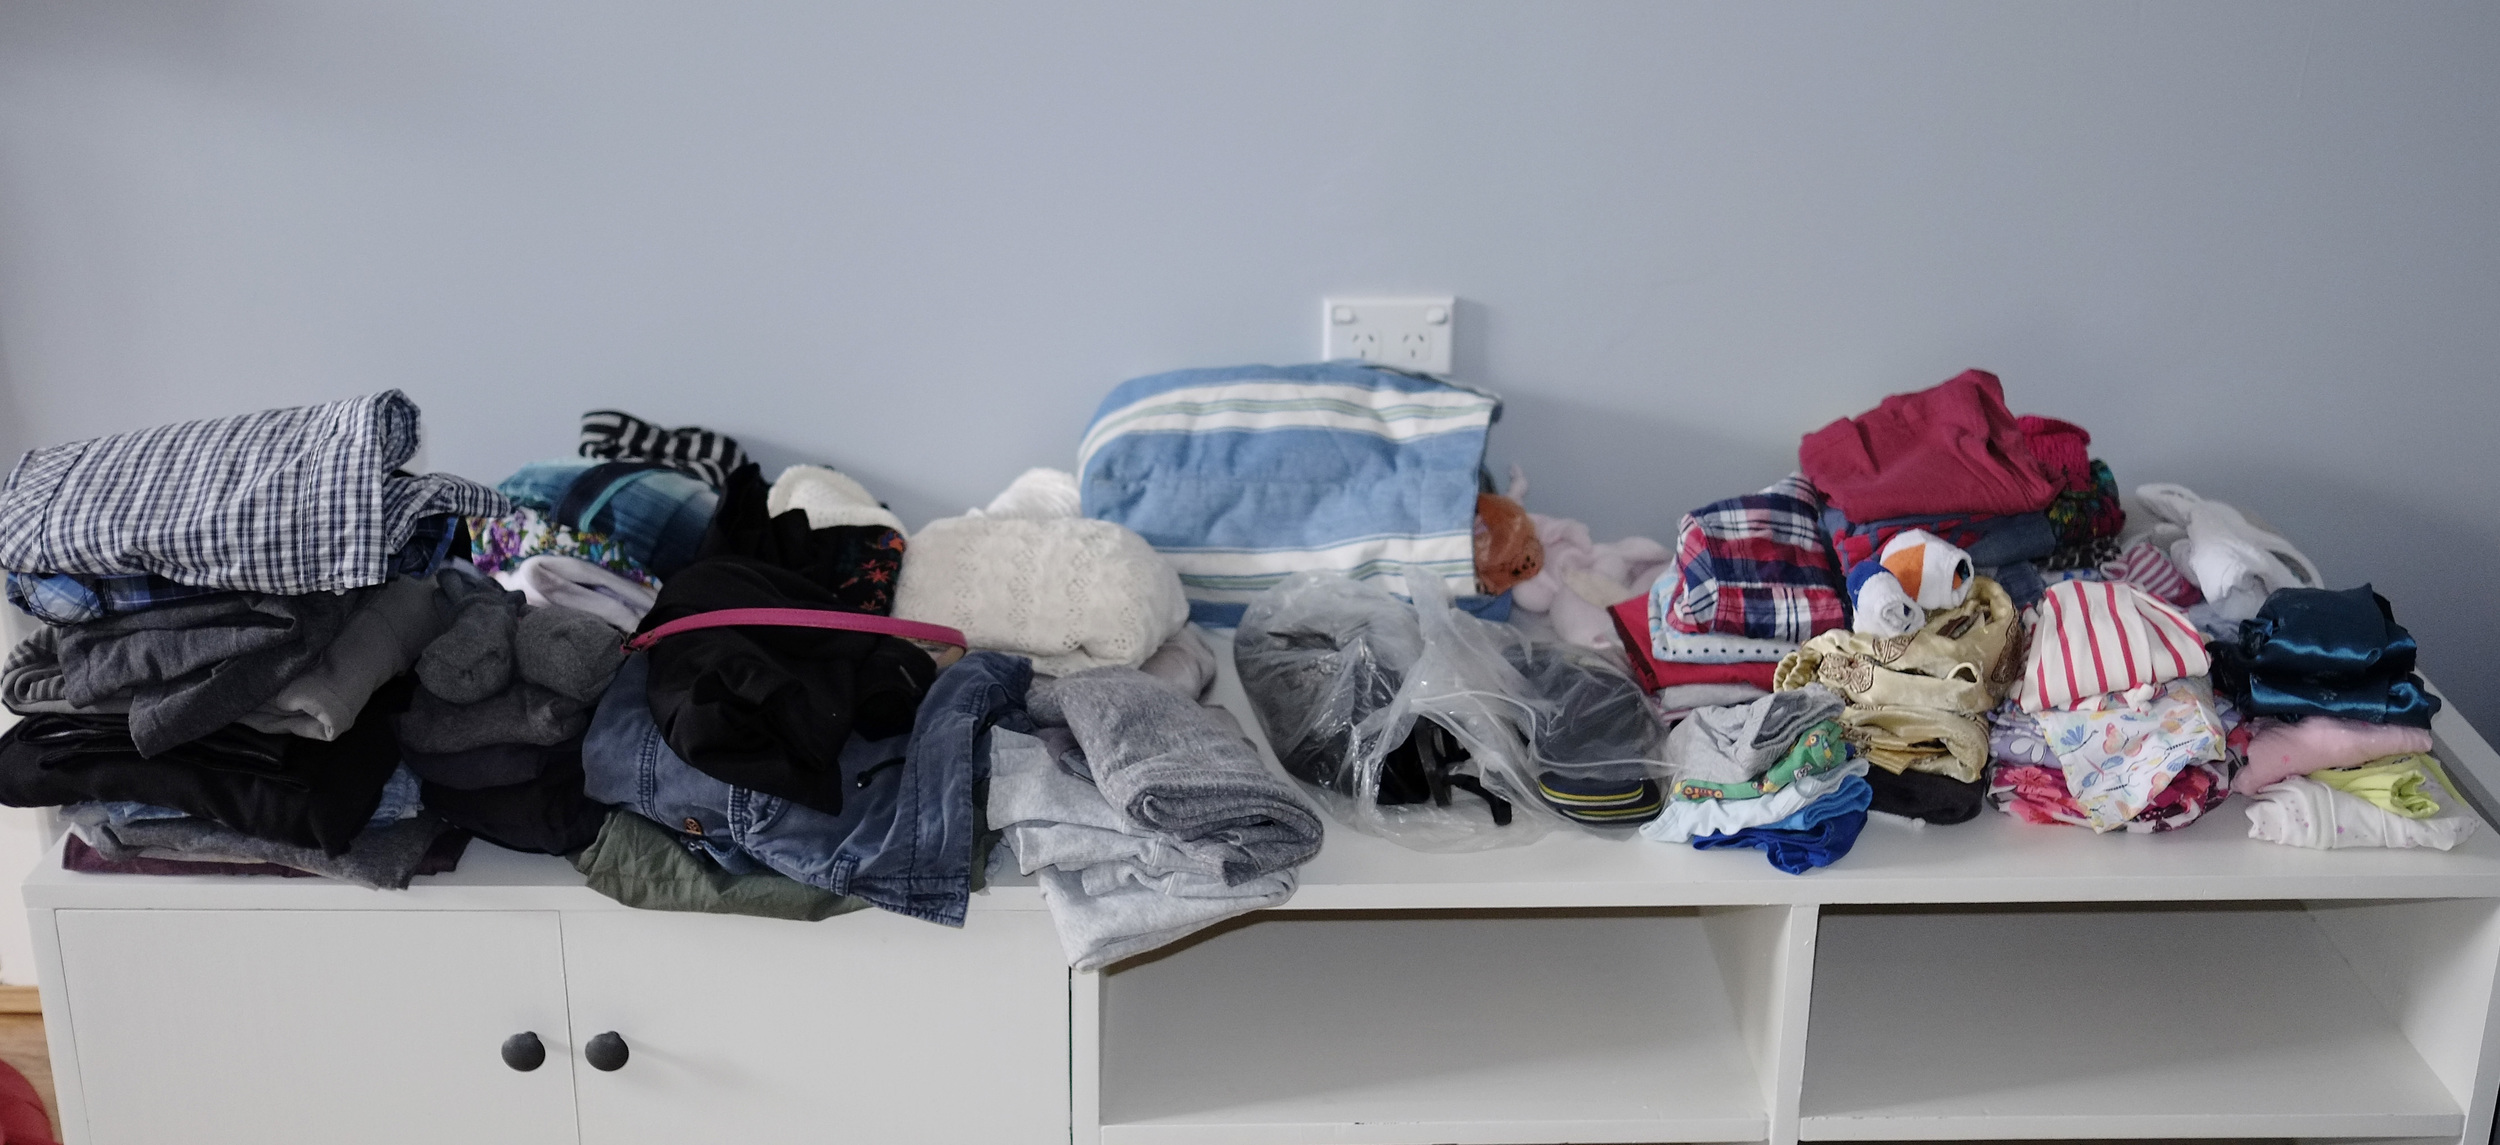 Clothes for packing